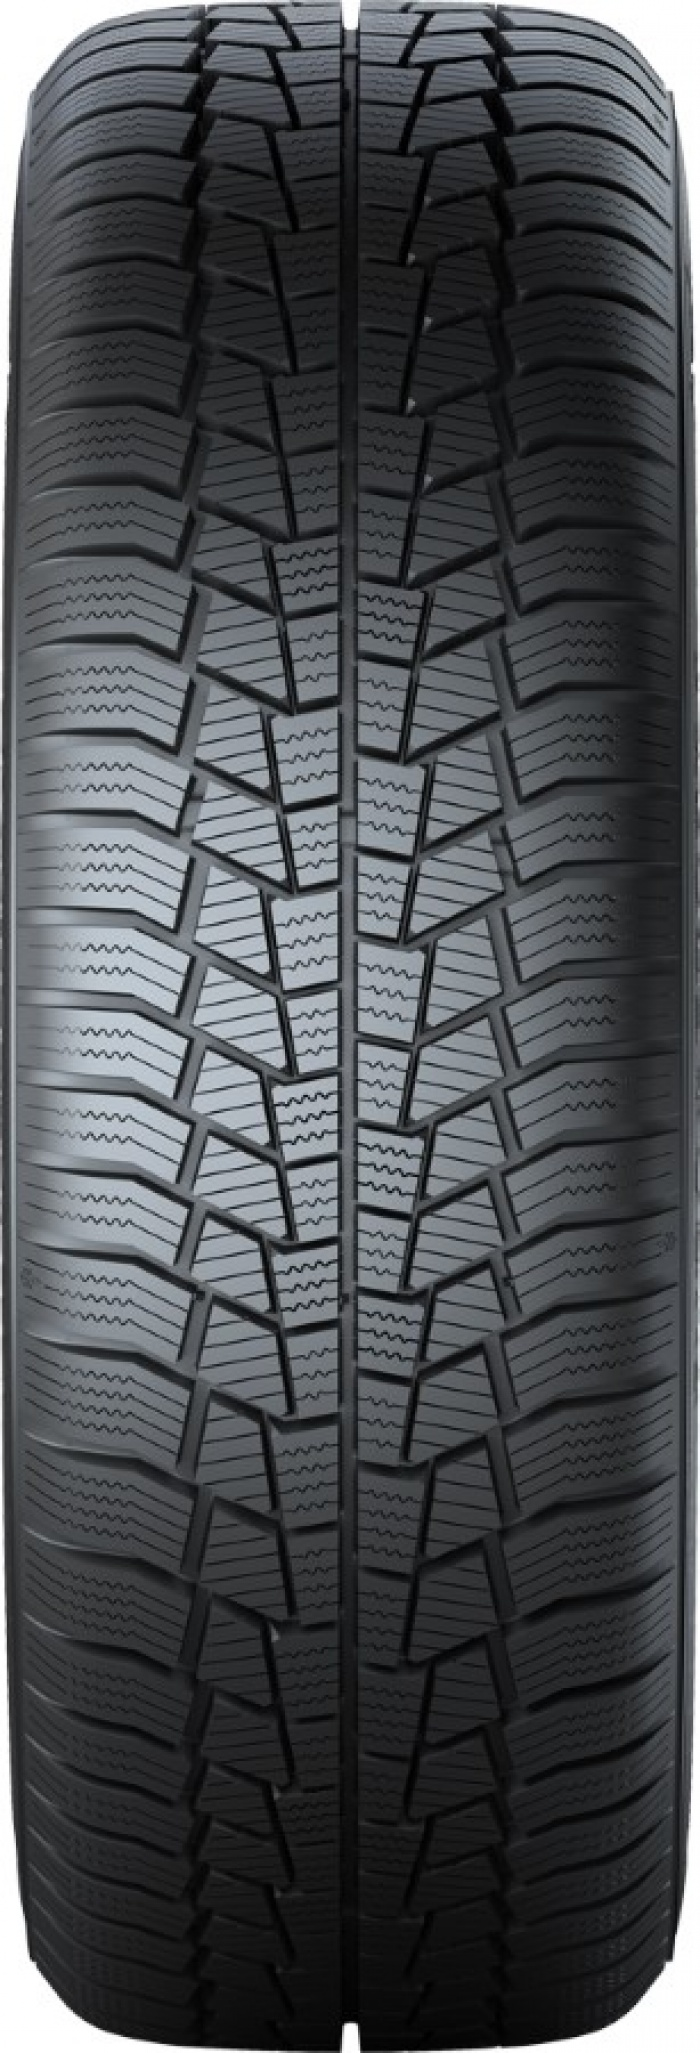 Gislaved Euro Frost 6 215/50 R17 95V  не шип